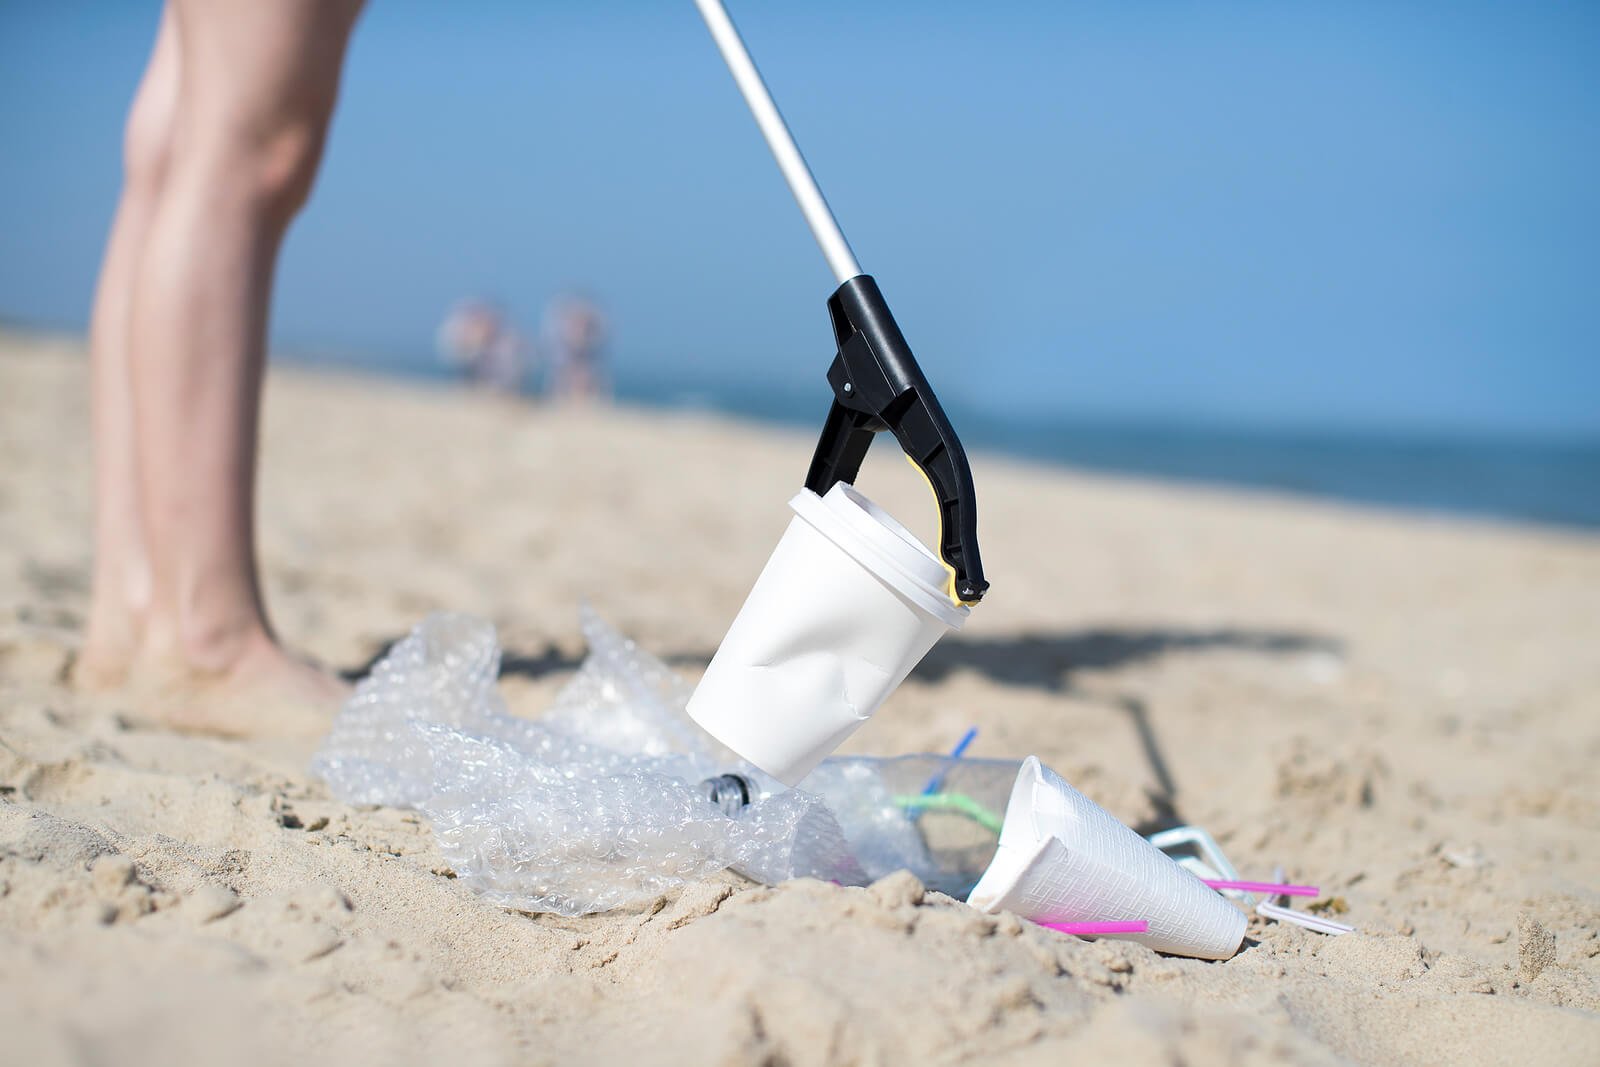 Someone litter picking on a beach, using a litter picker to pick up a coffee cup